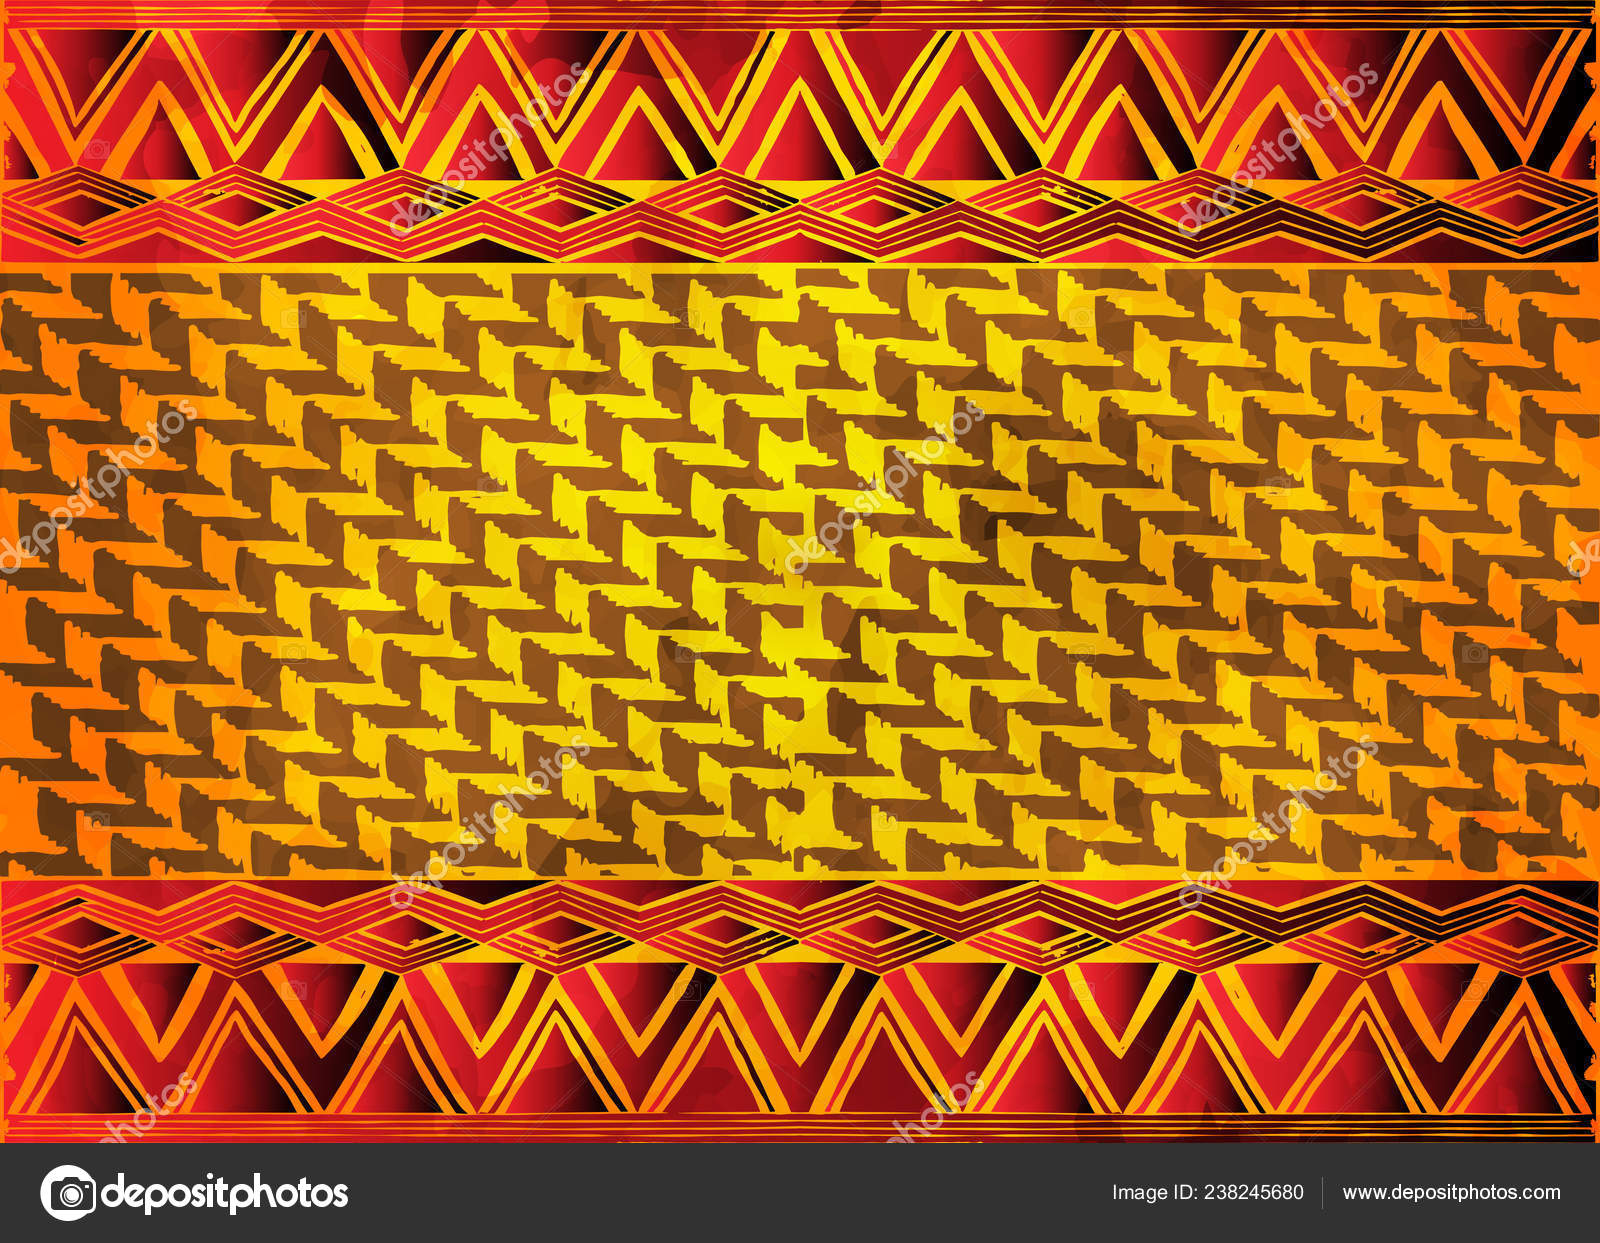 African Print Fabric Ethnic Handmade Ornament Your Design Tribal